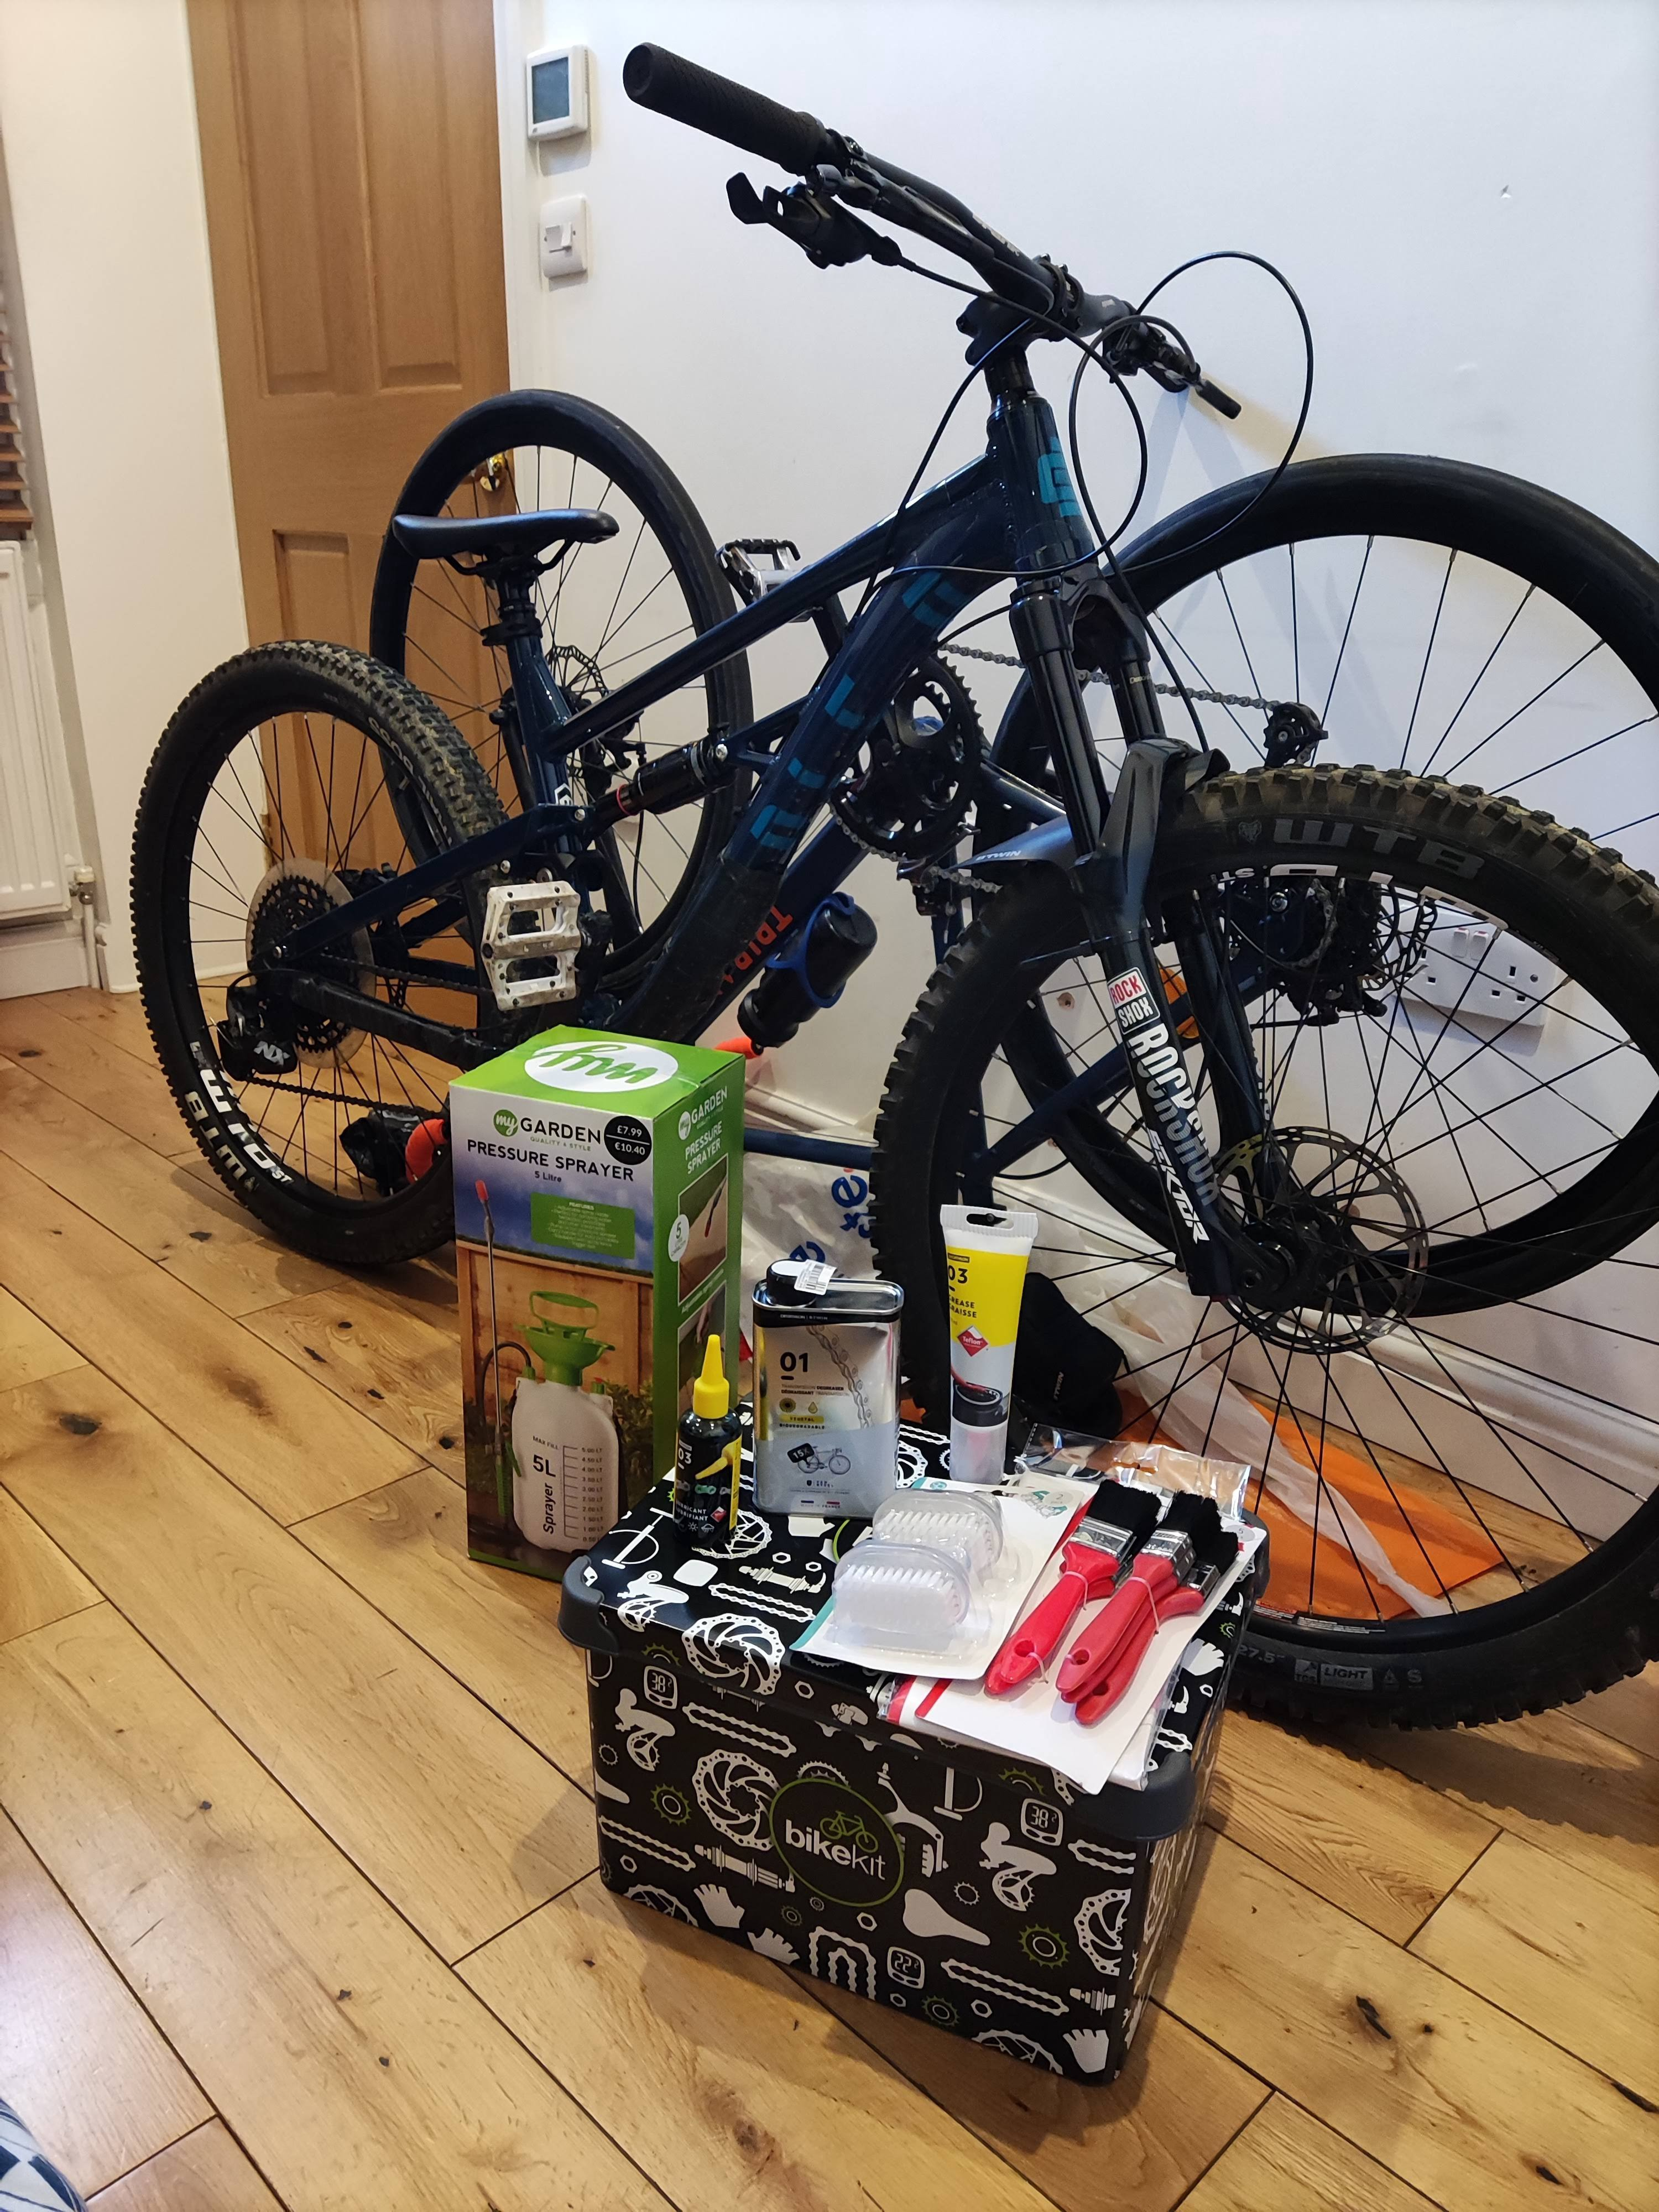 Clean bikes and cleaning kit